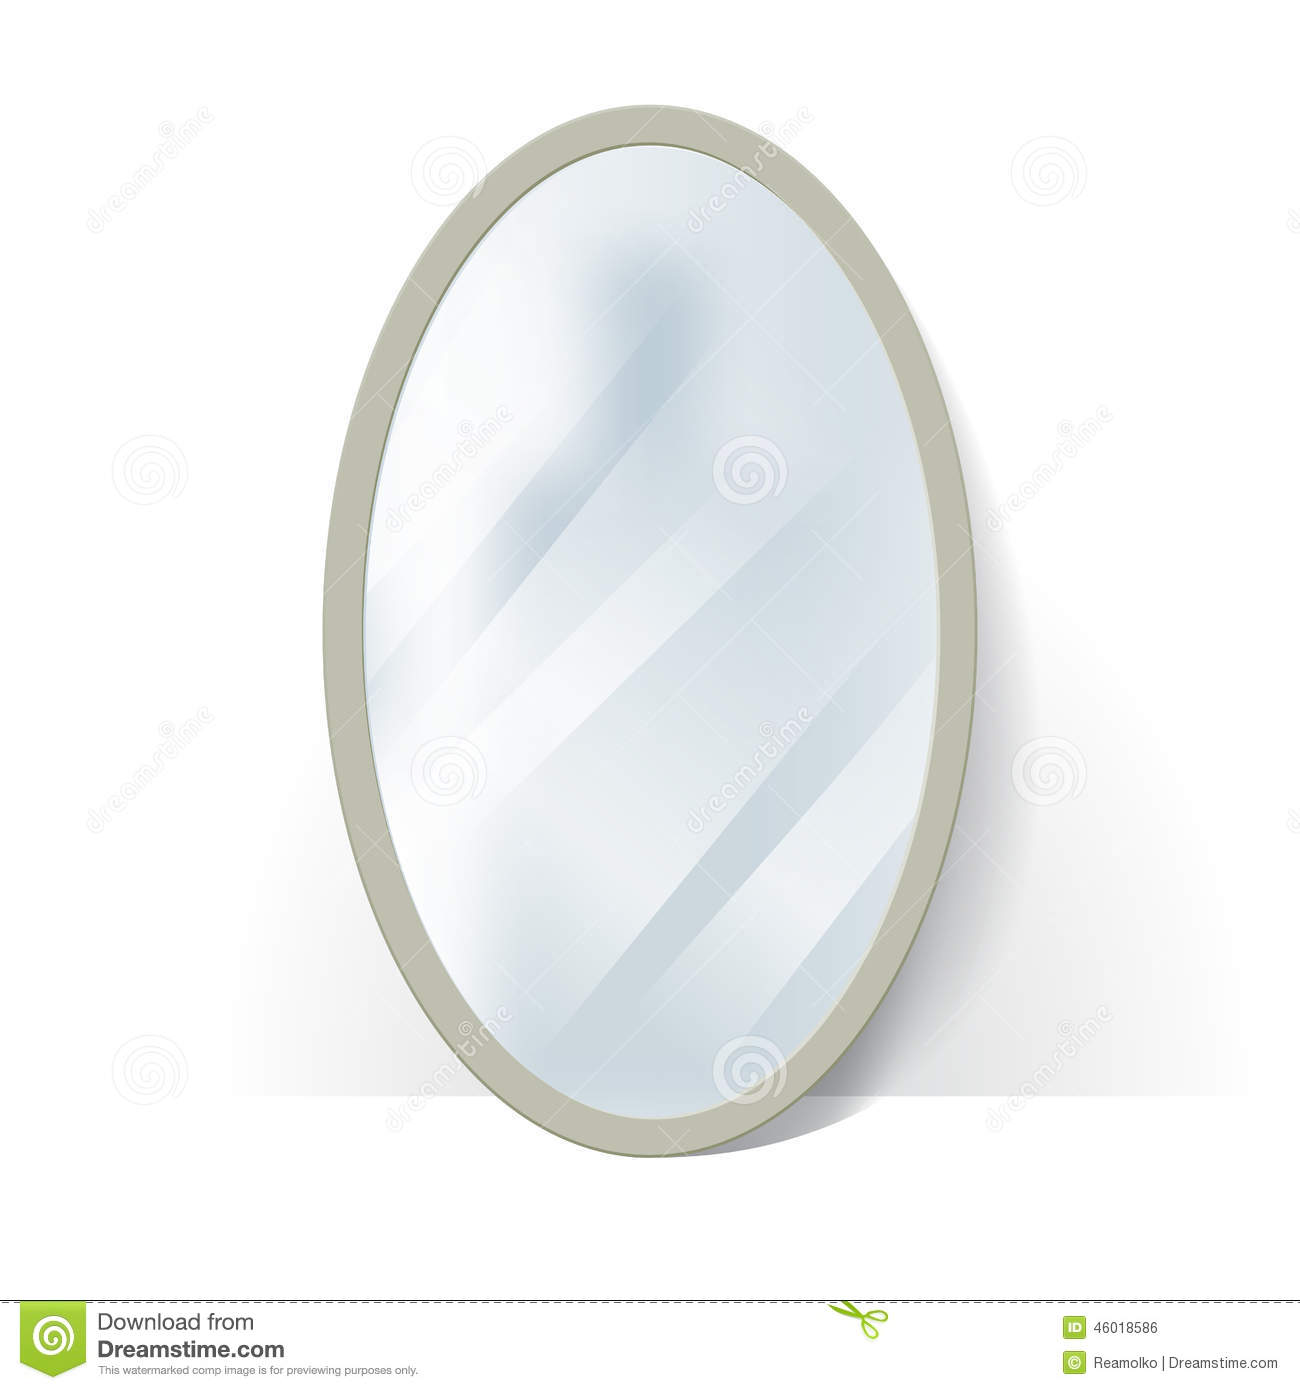 Big Oval Mirror With Blurry Reflection Stock Vector